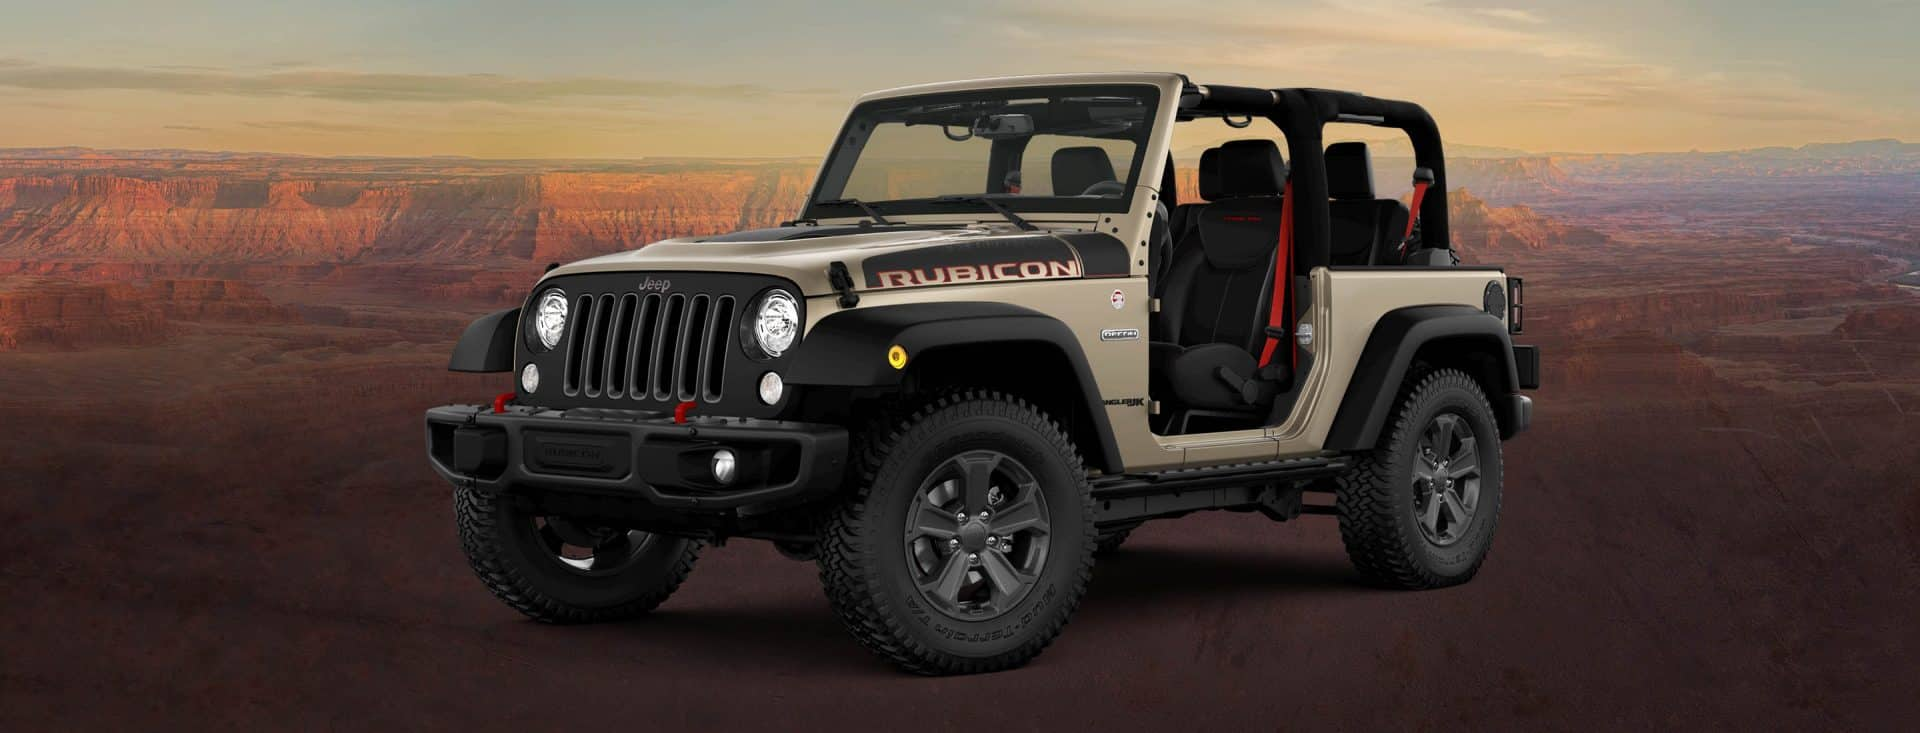 2018 jeep wrangler rubicon 2018 cars models. Black Bedroom Furniture Sets. Home Design Ideas